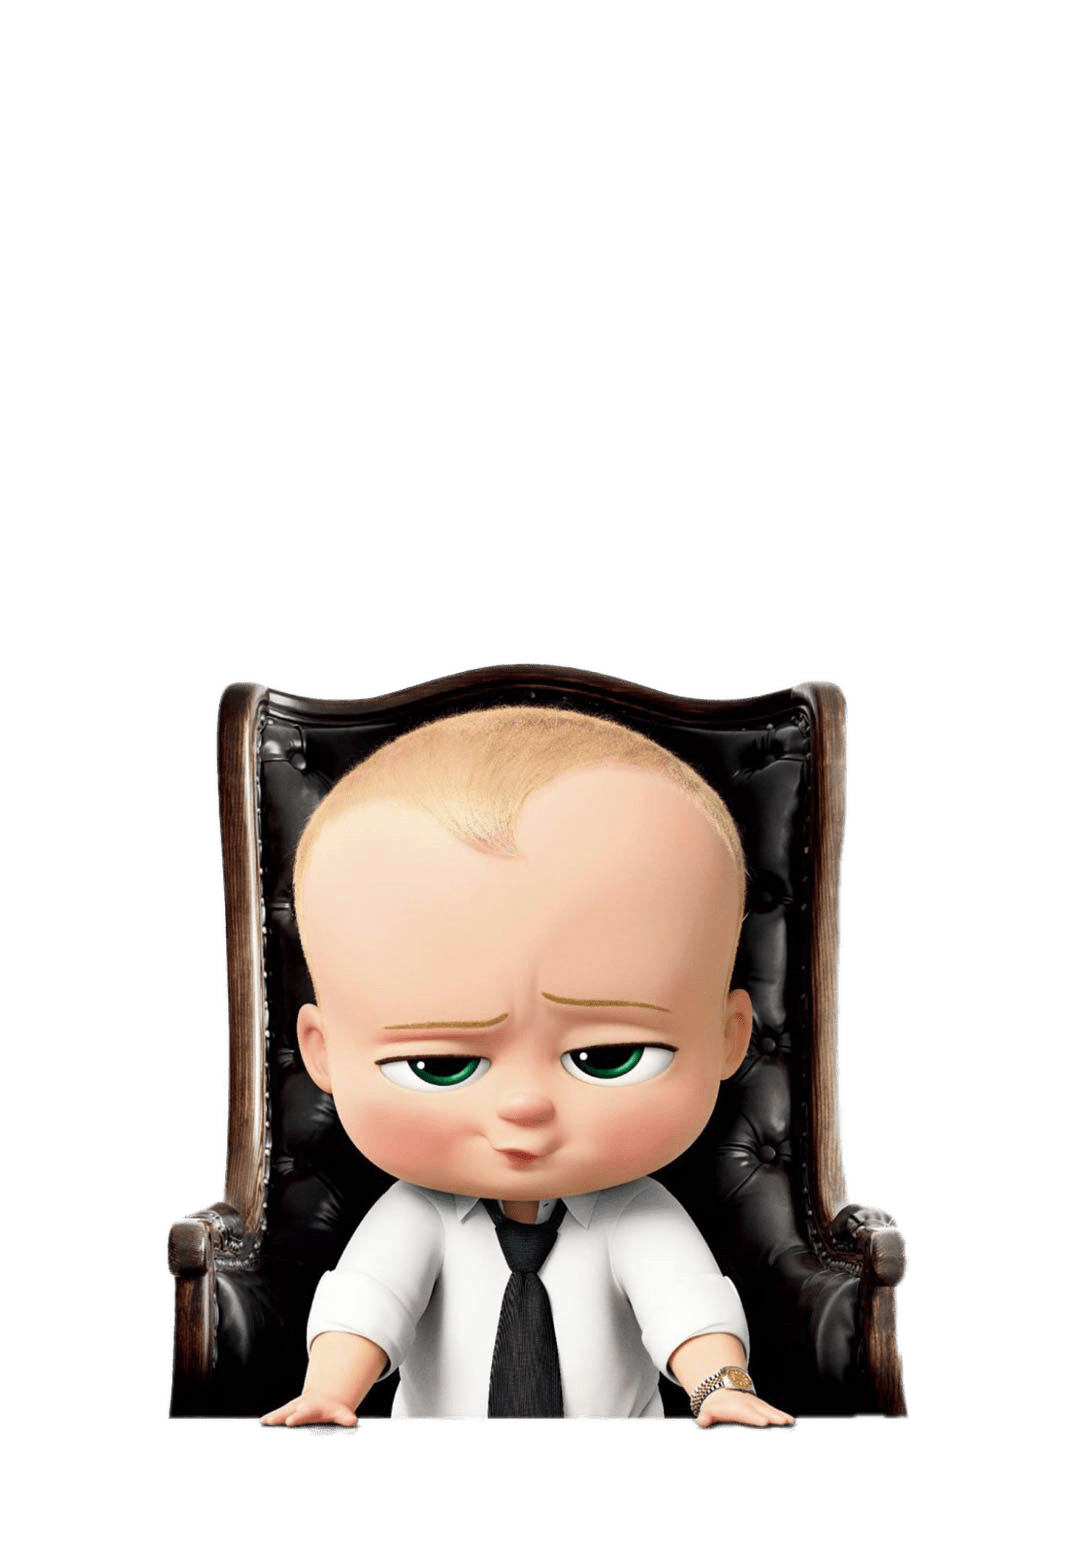 Boss baby png. In desk chair transparent